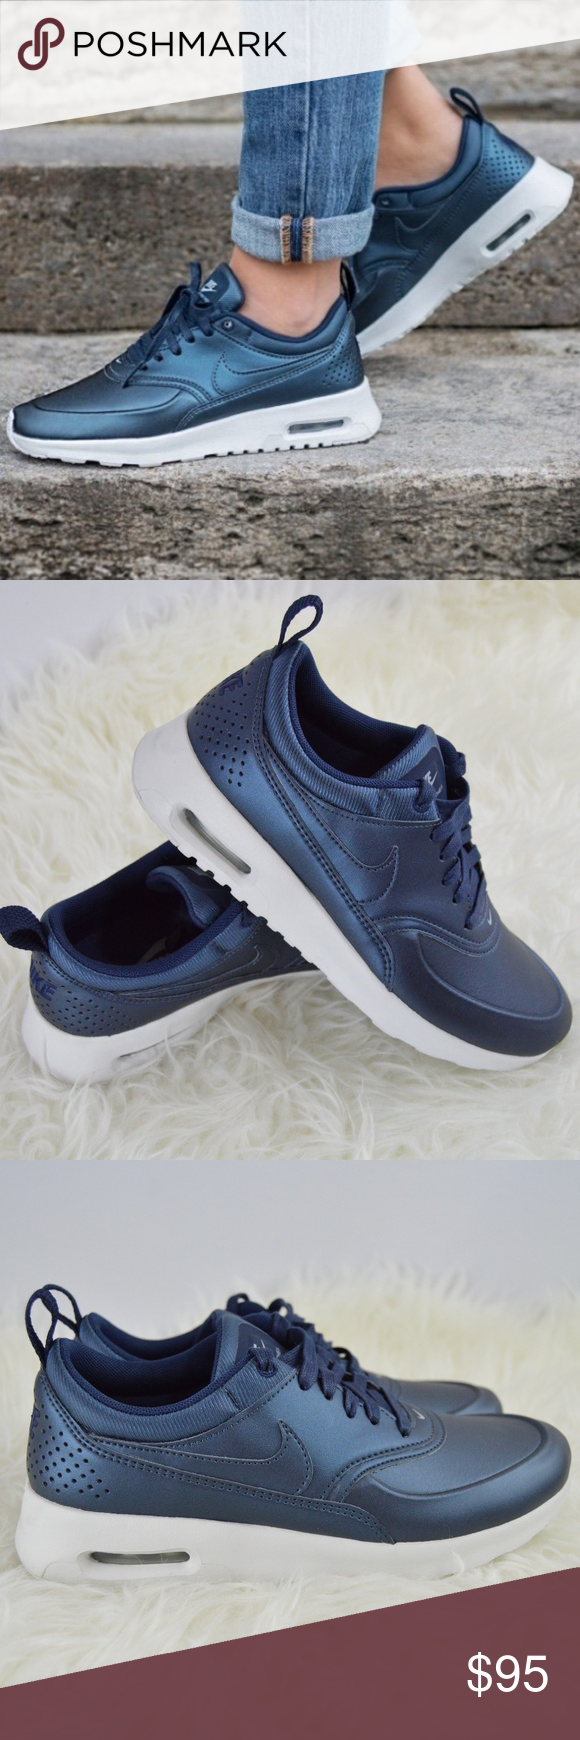 ... 44efc 8aa70 NEW Nike AIr Max Thea Blue Metallic 6 Lightweight and  durable 60c694308